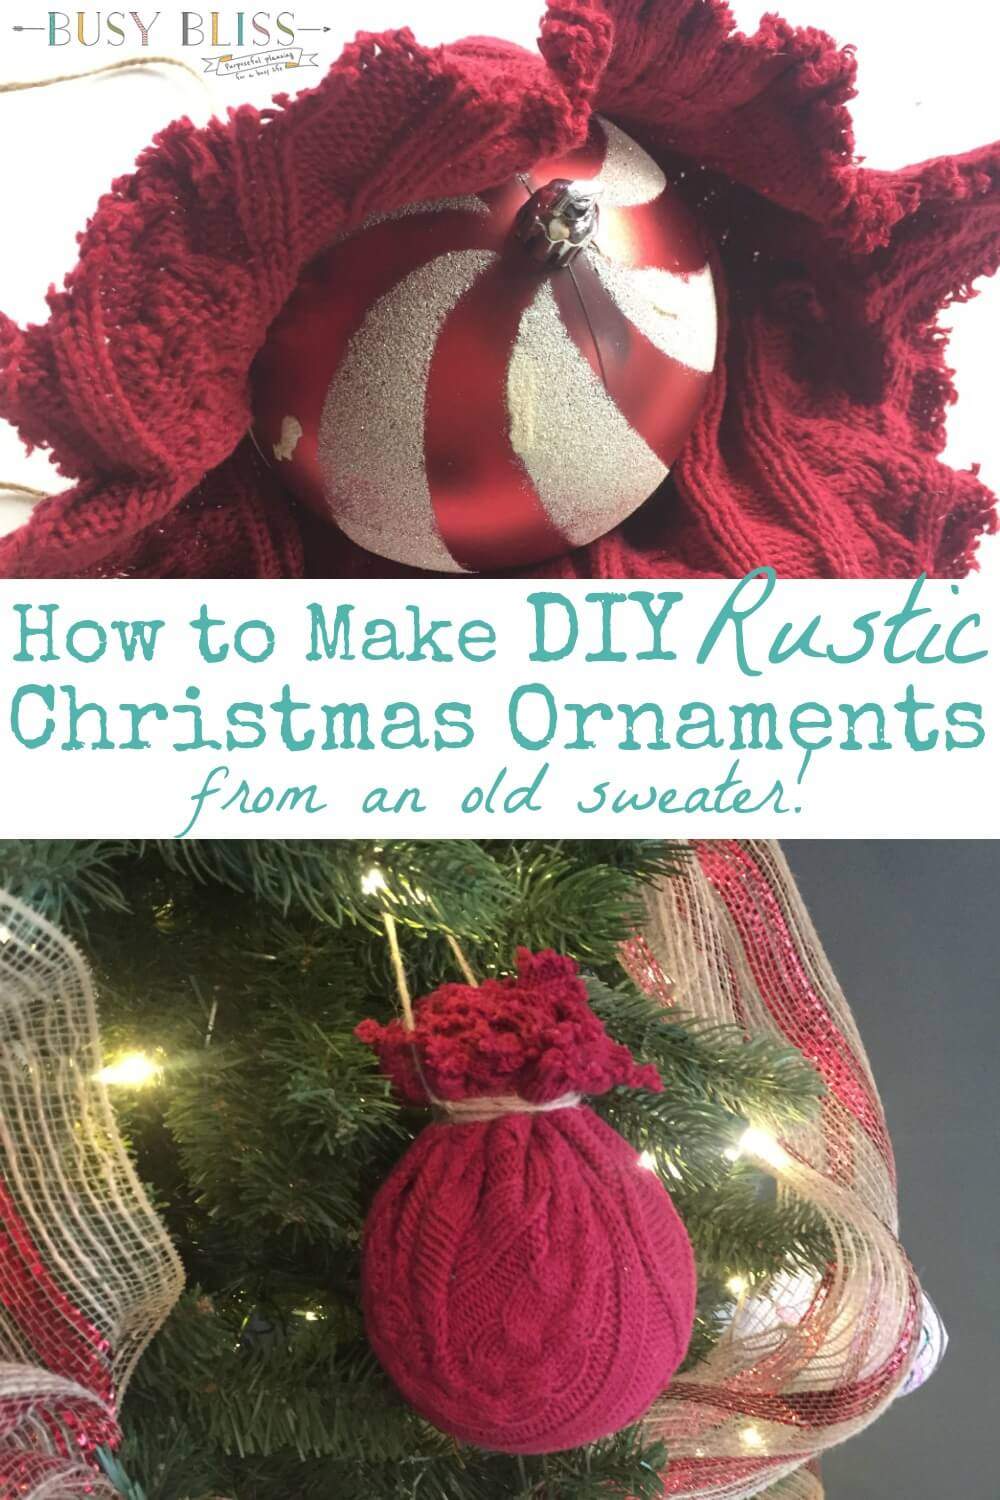 How To Make Easy Diy Rustic Christmas Ornaments Busy Bliss